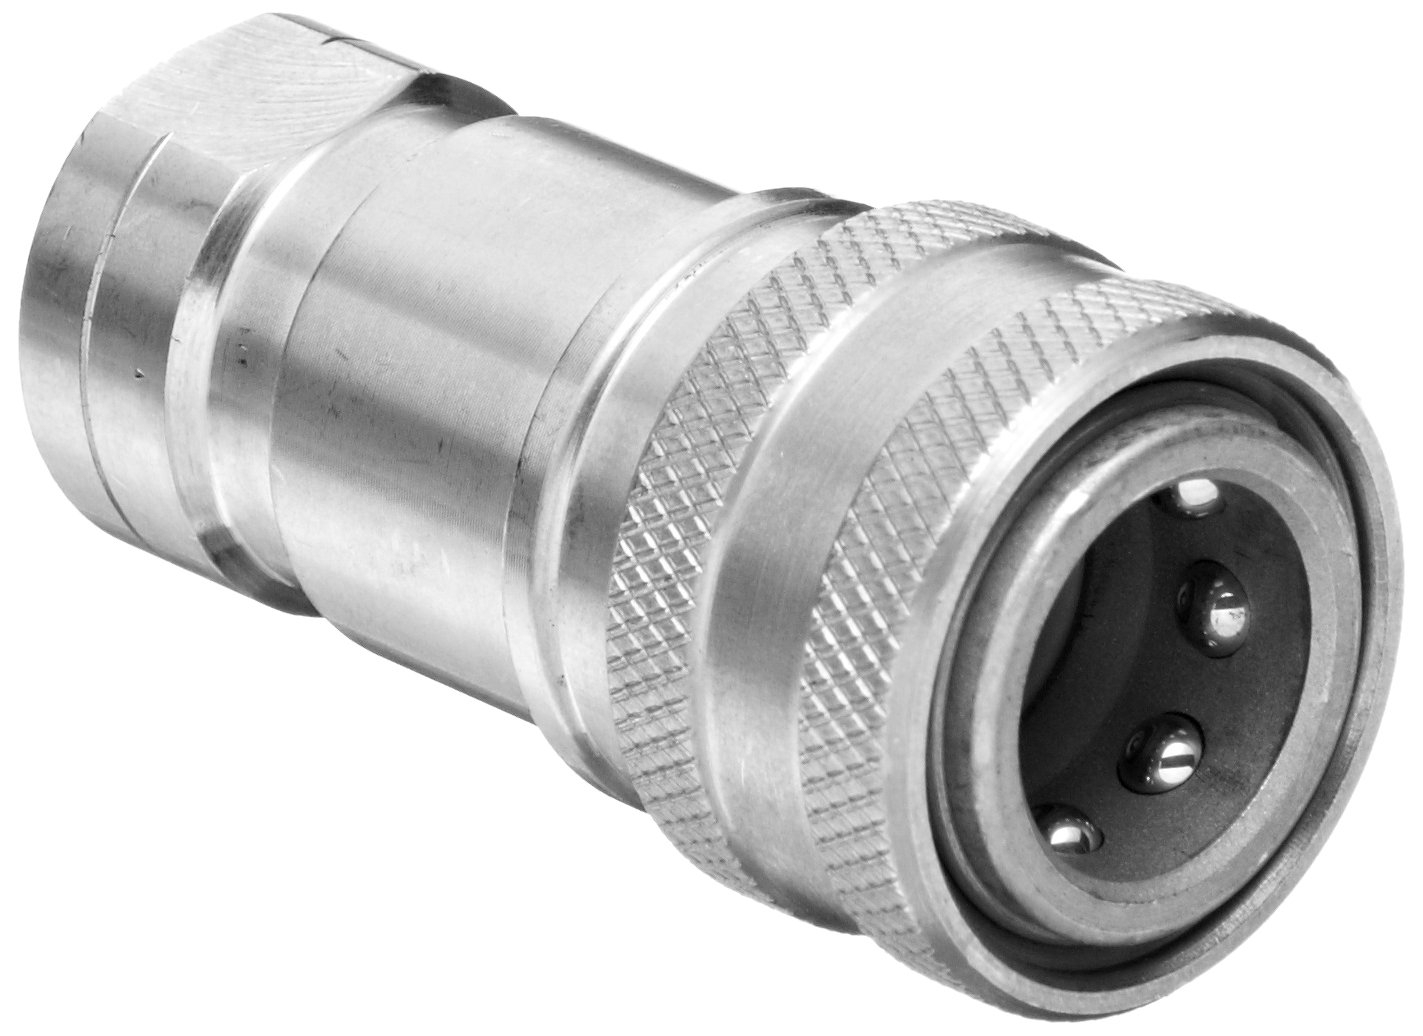 Dixon SS16-263 Stainless Steel 303 Industrial Hydraulic Quick-Connect Fitting, Poppet Valve Coupler, 1/4'' Coupling x 1/4''-18 NPTF